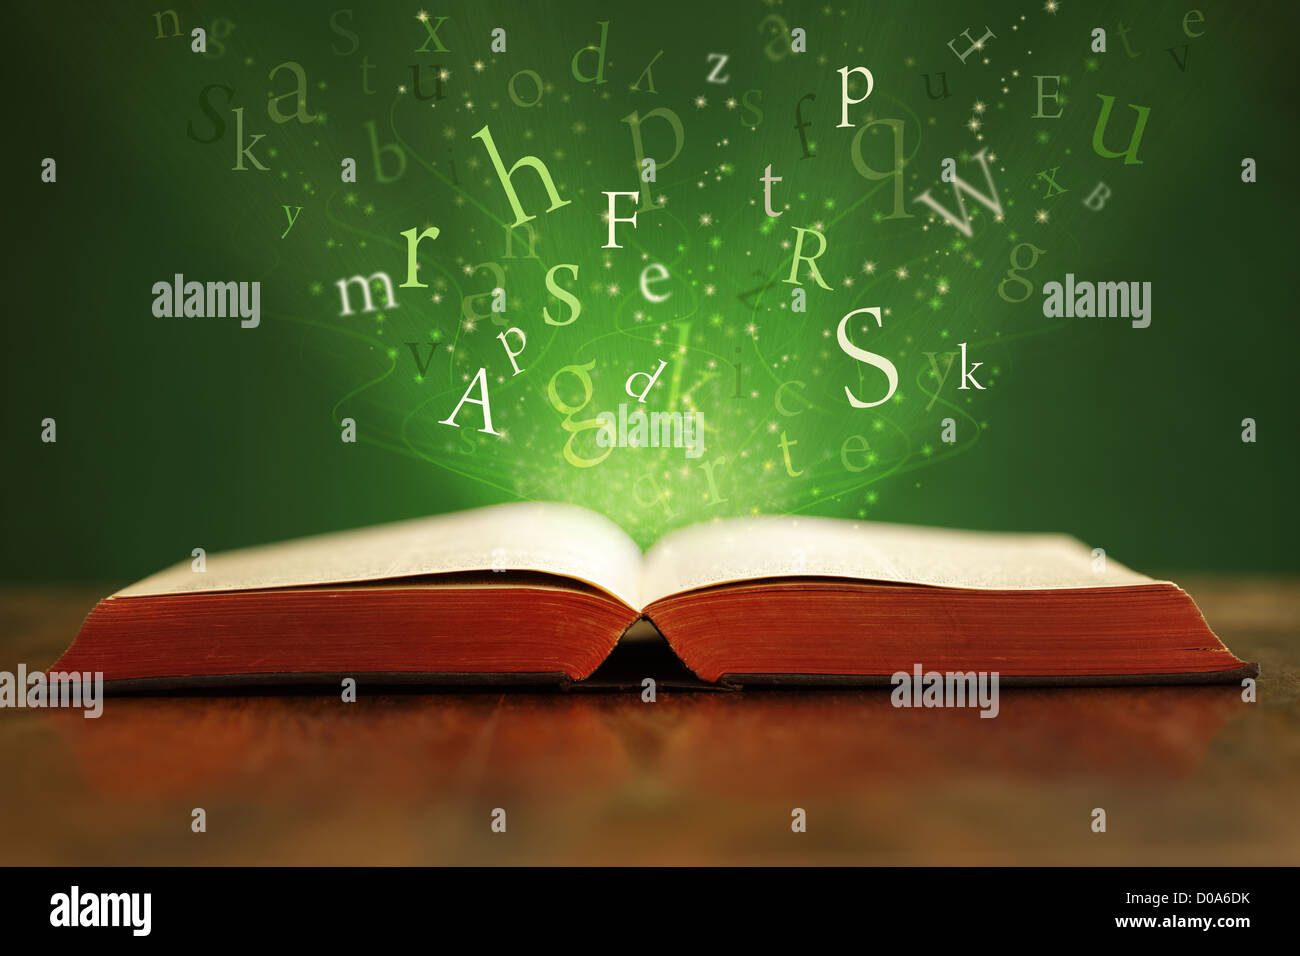 Magical words - Stock Image